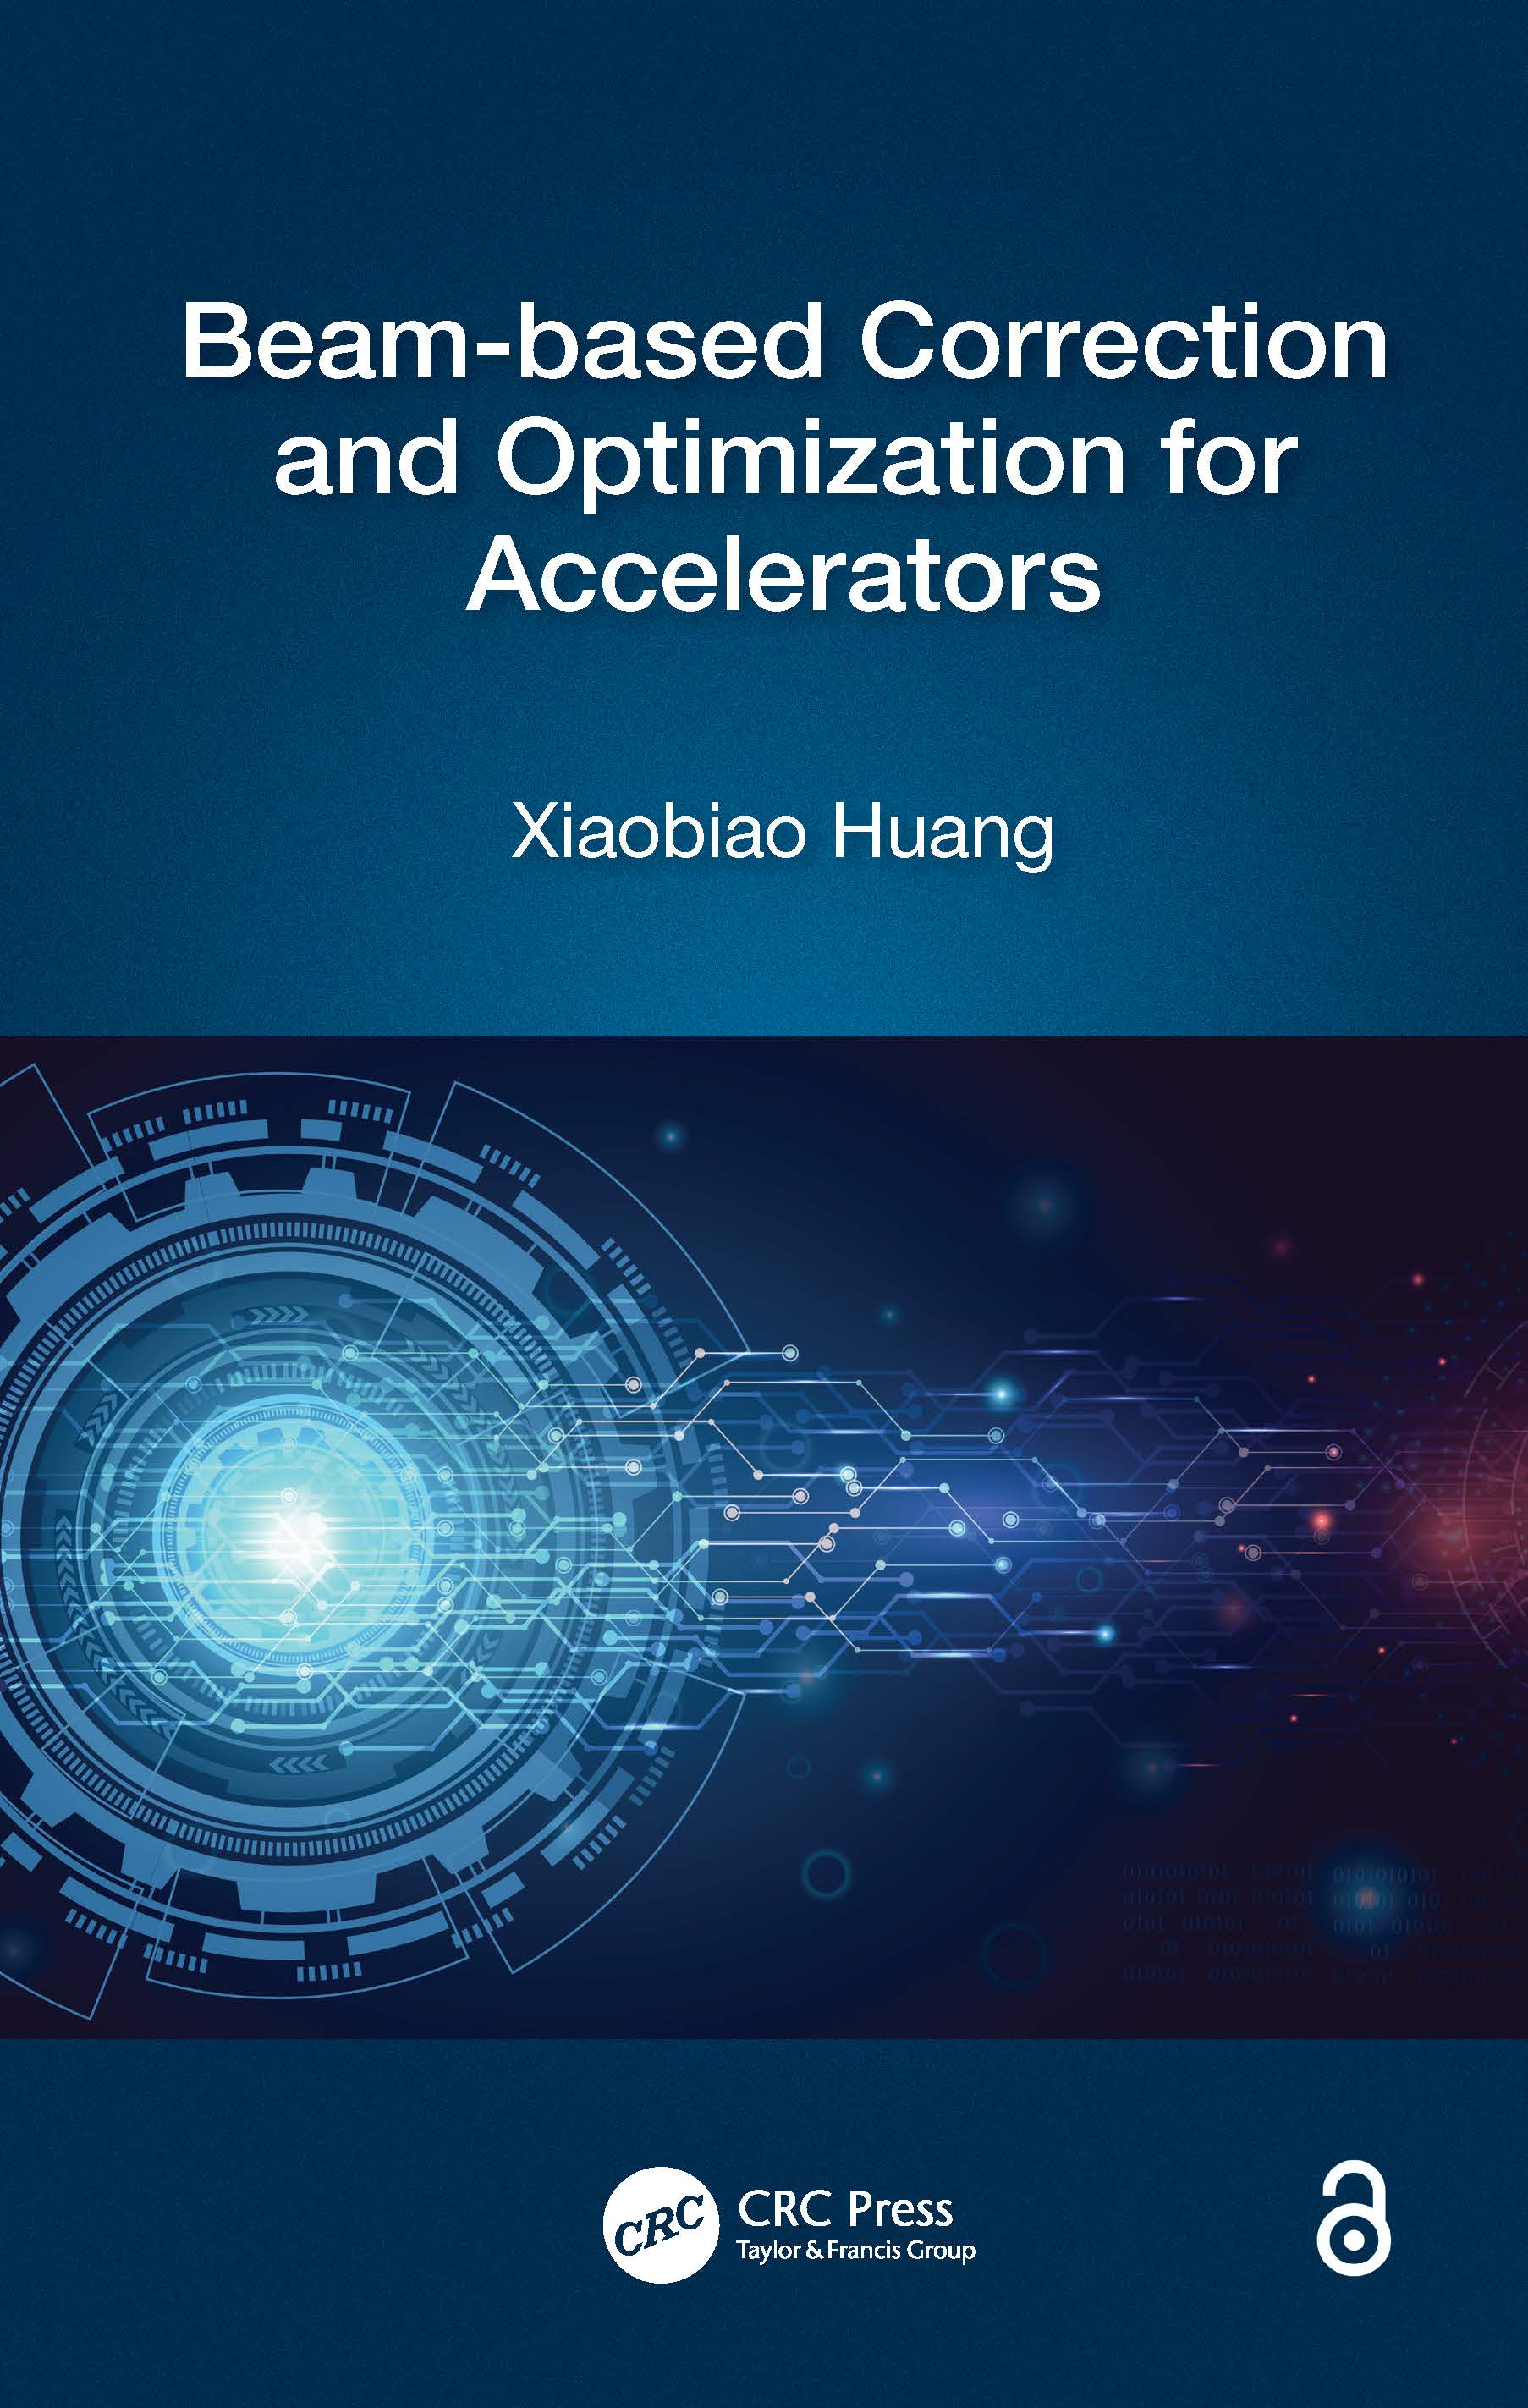 Beam-based Correction and Optimization for Accelerators book cover